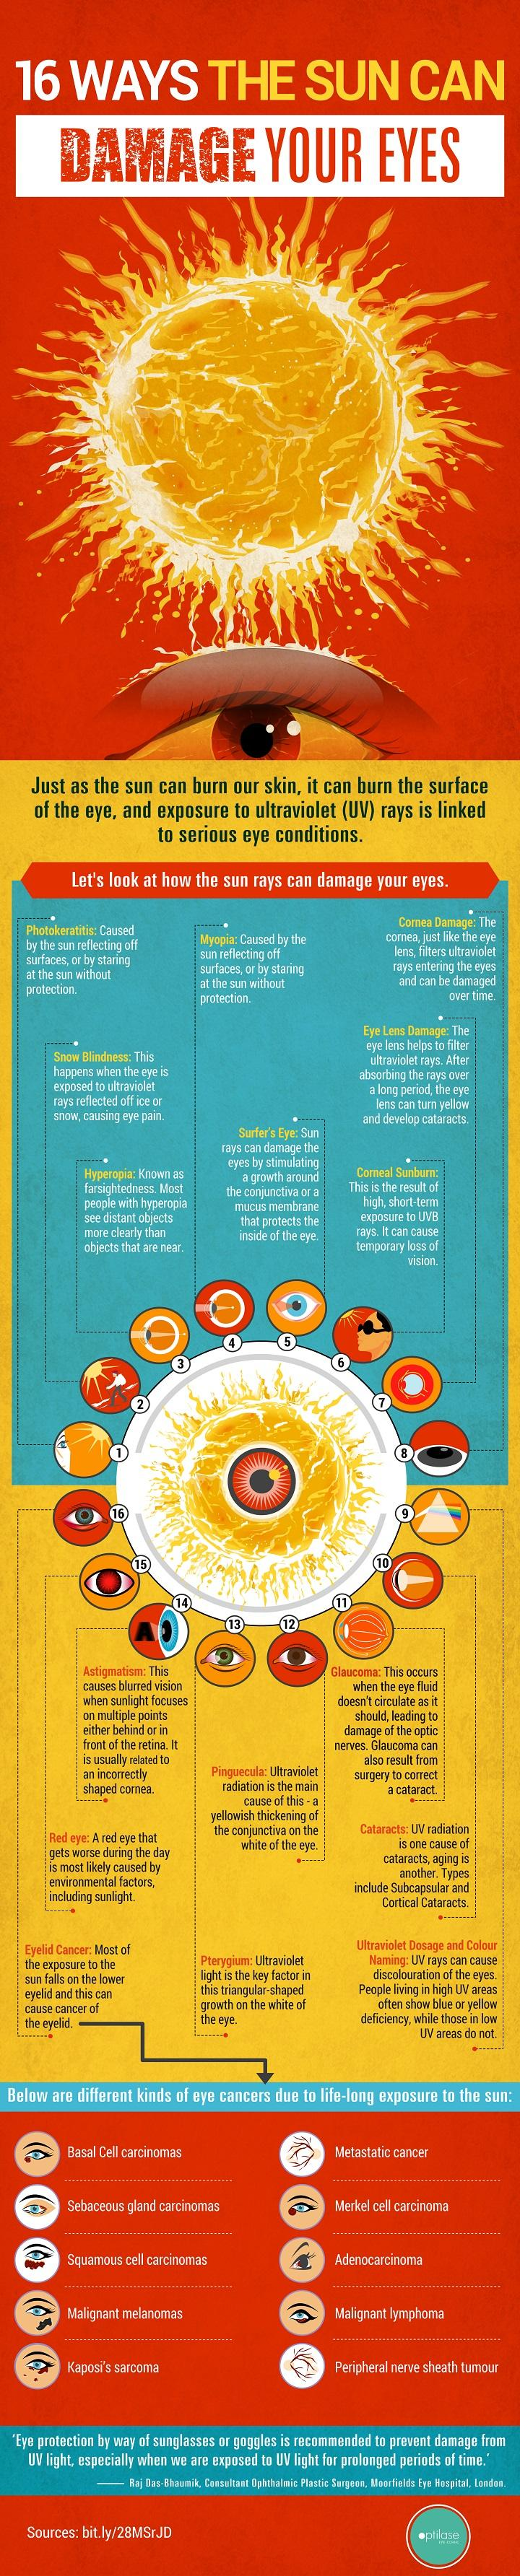 Oasdom.com - 16 ways the sun can damage your eyes